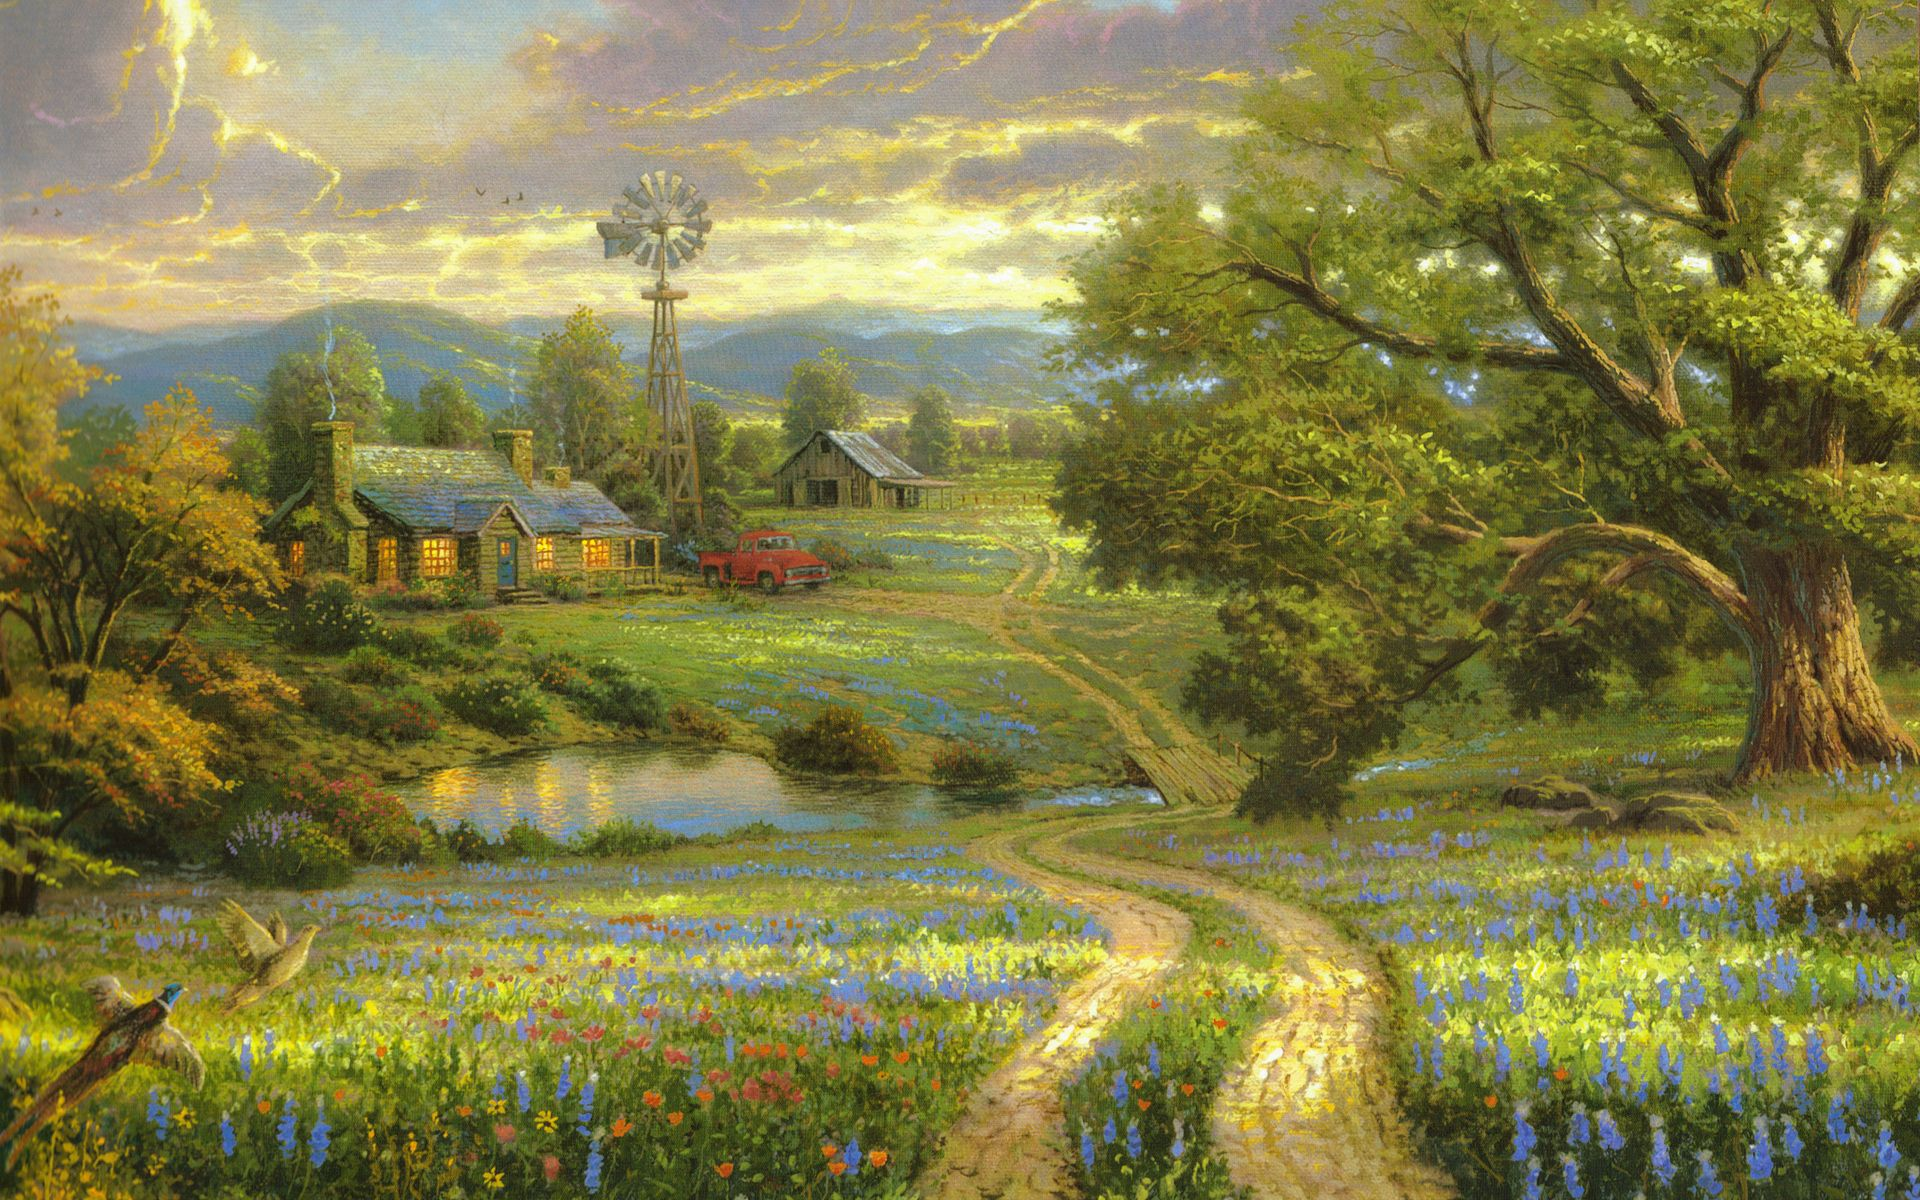 Landscapepaintings thomas kinkade landscape paintings for Oil painting scenery